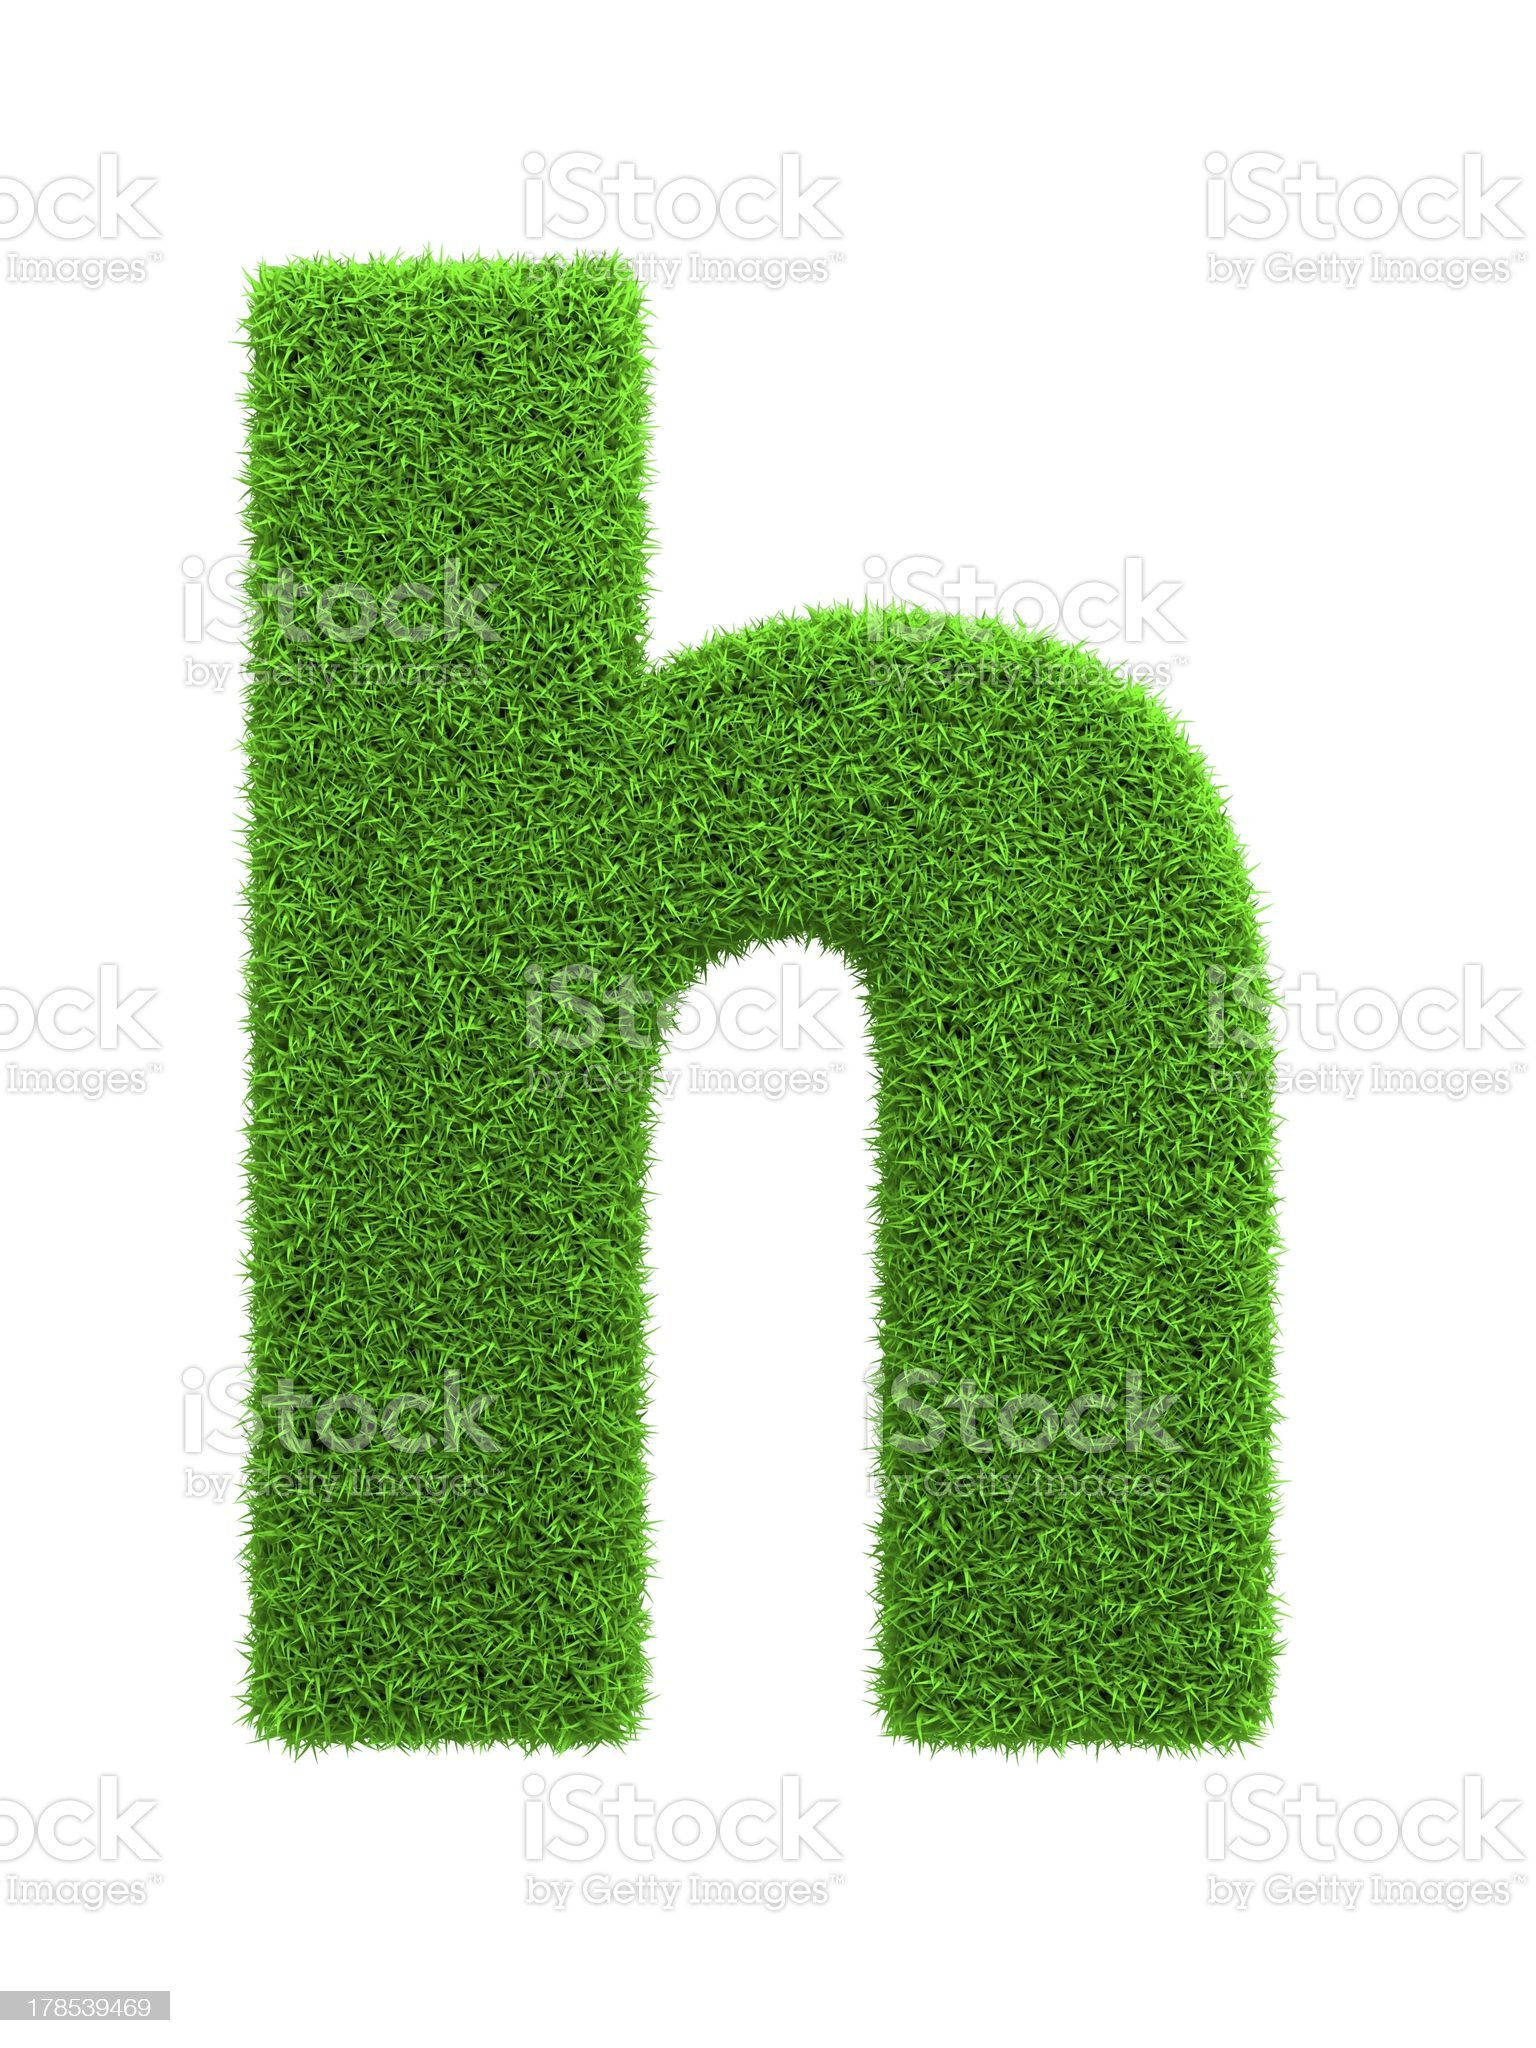 Grass Letter Isolated on White. royalty-free stock photo